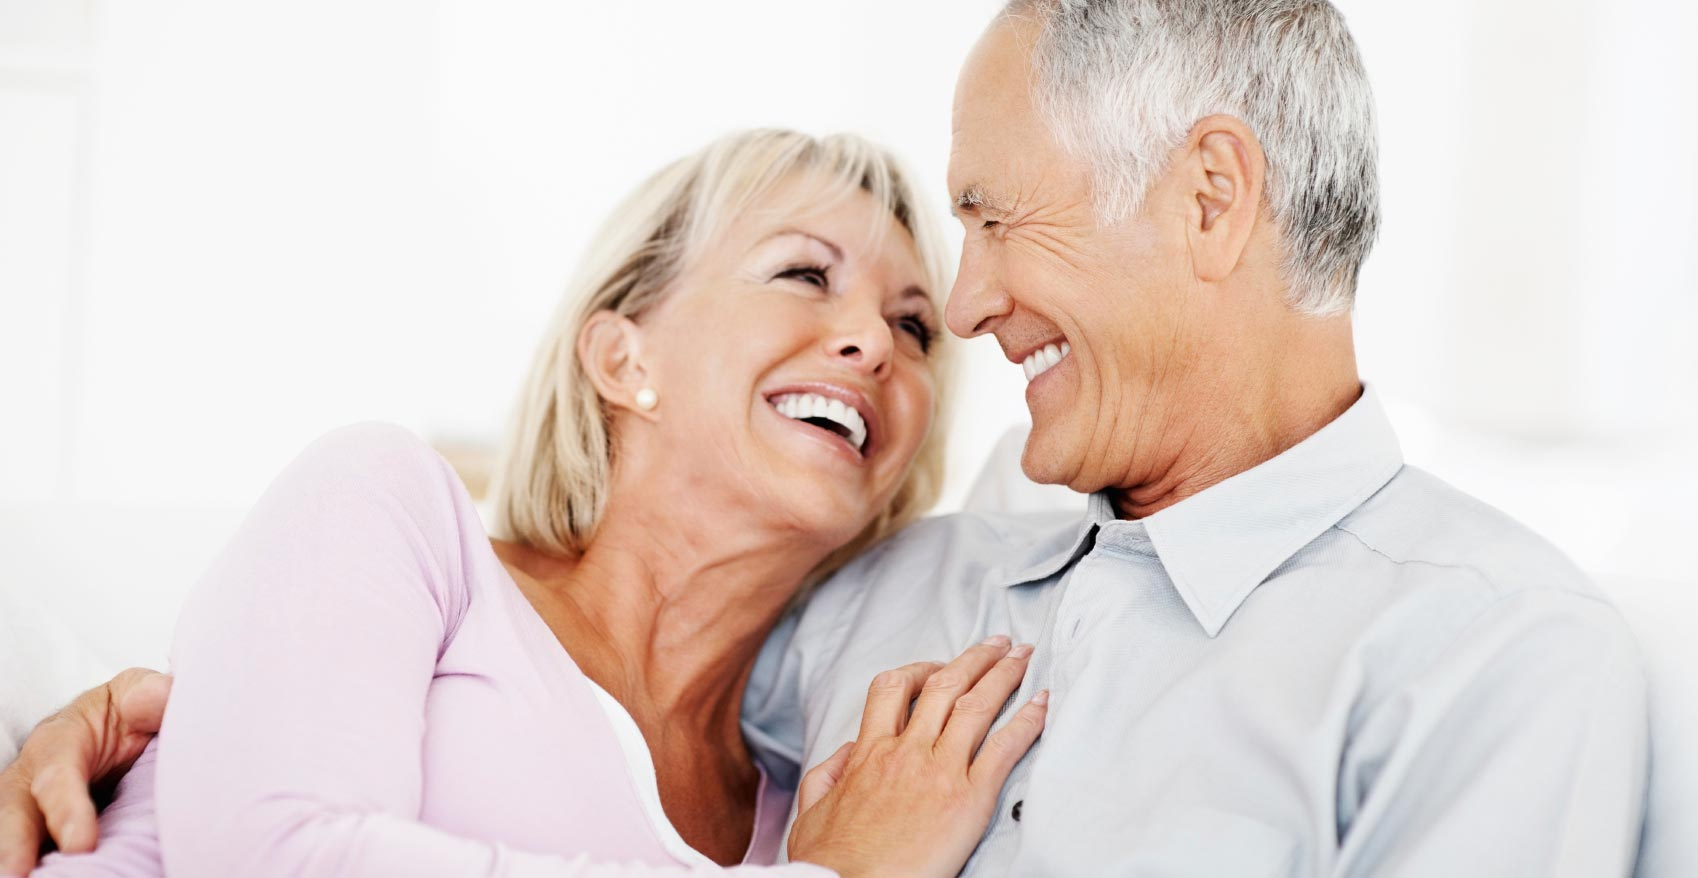 A senior couple laughing together